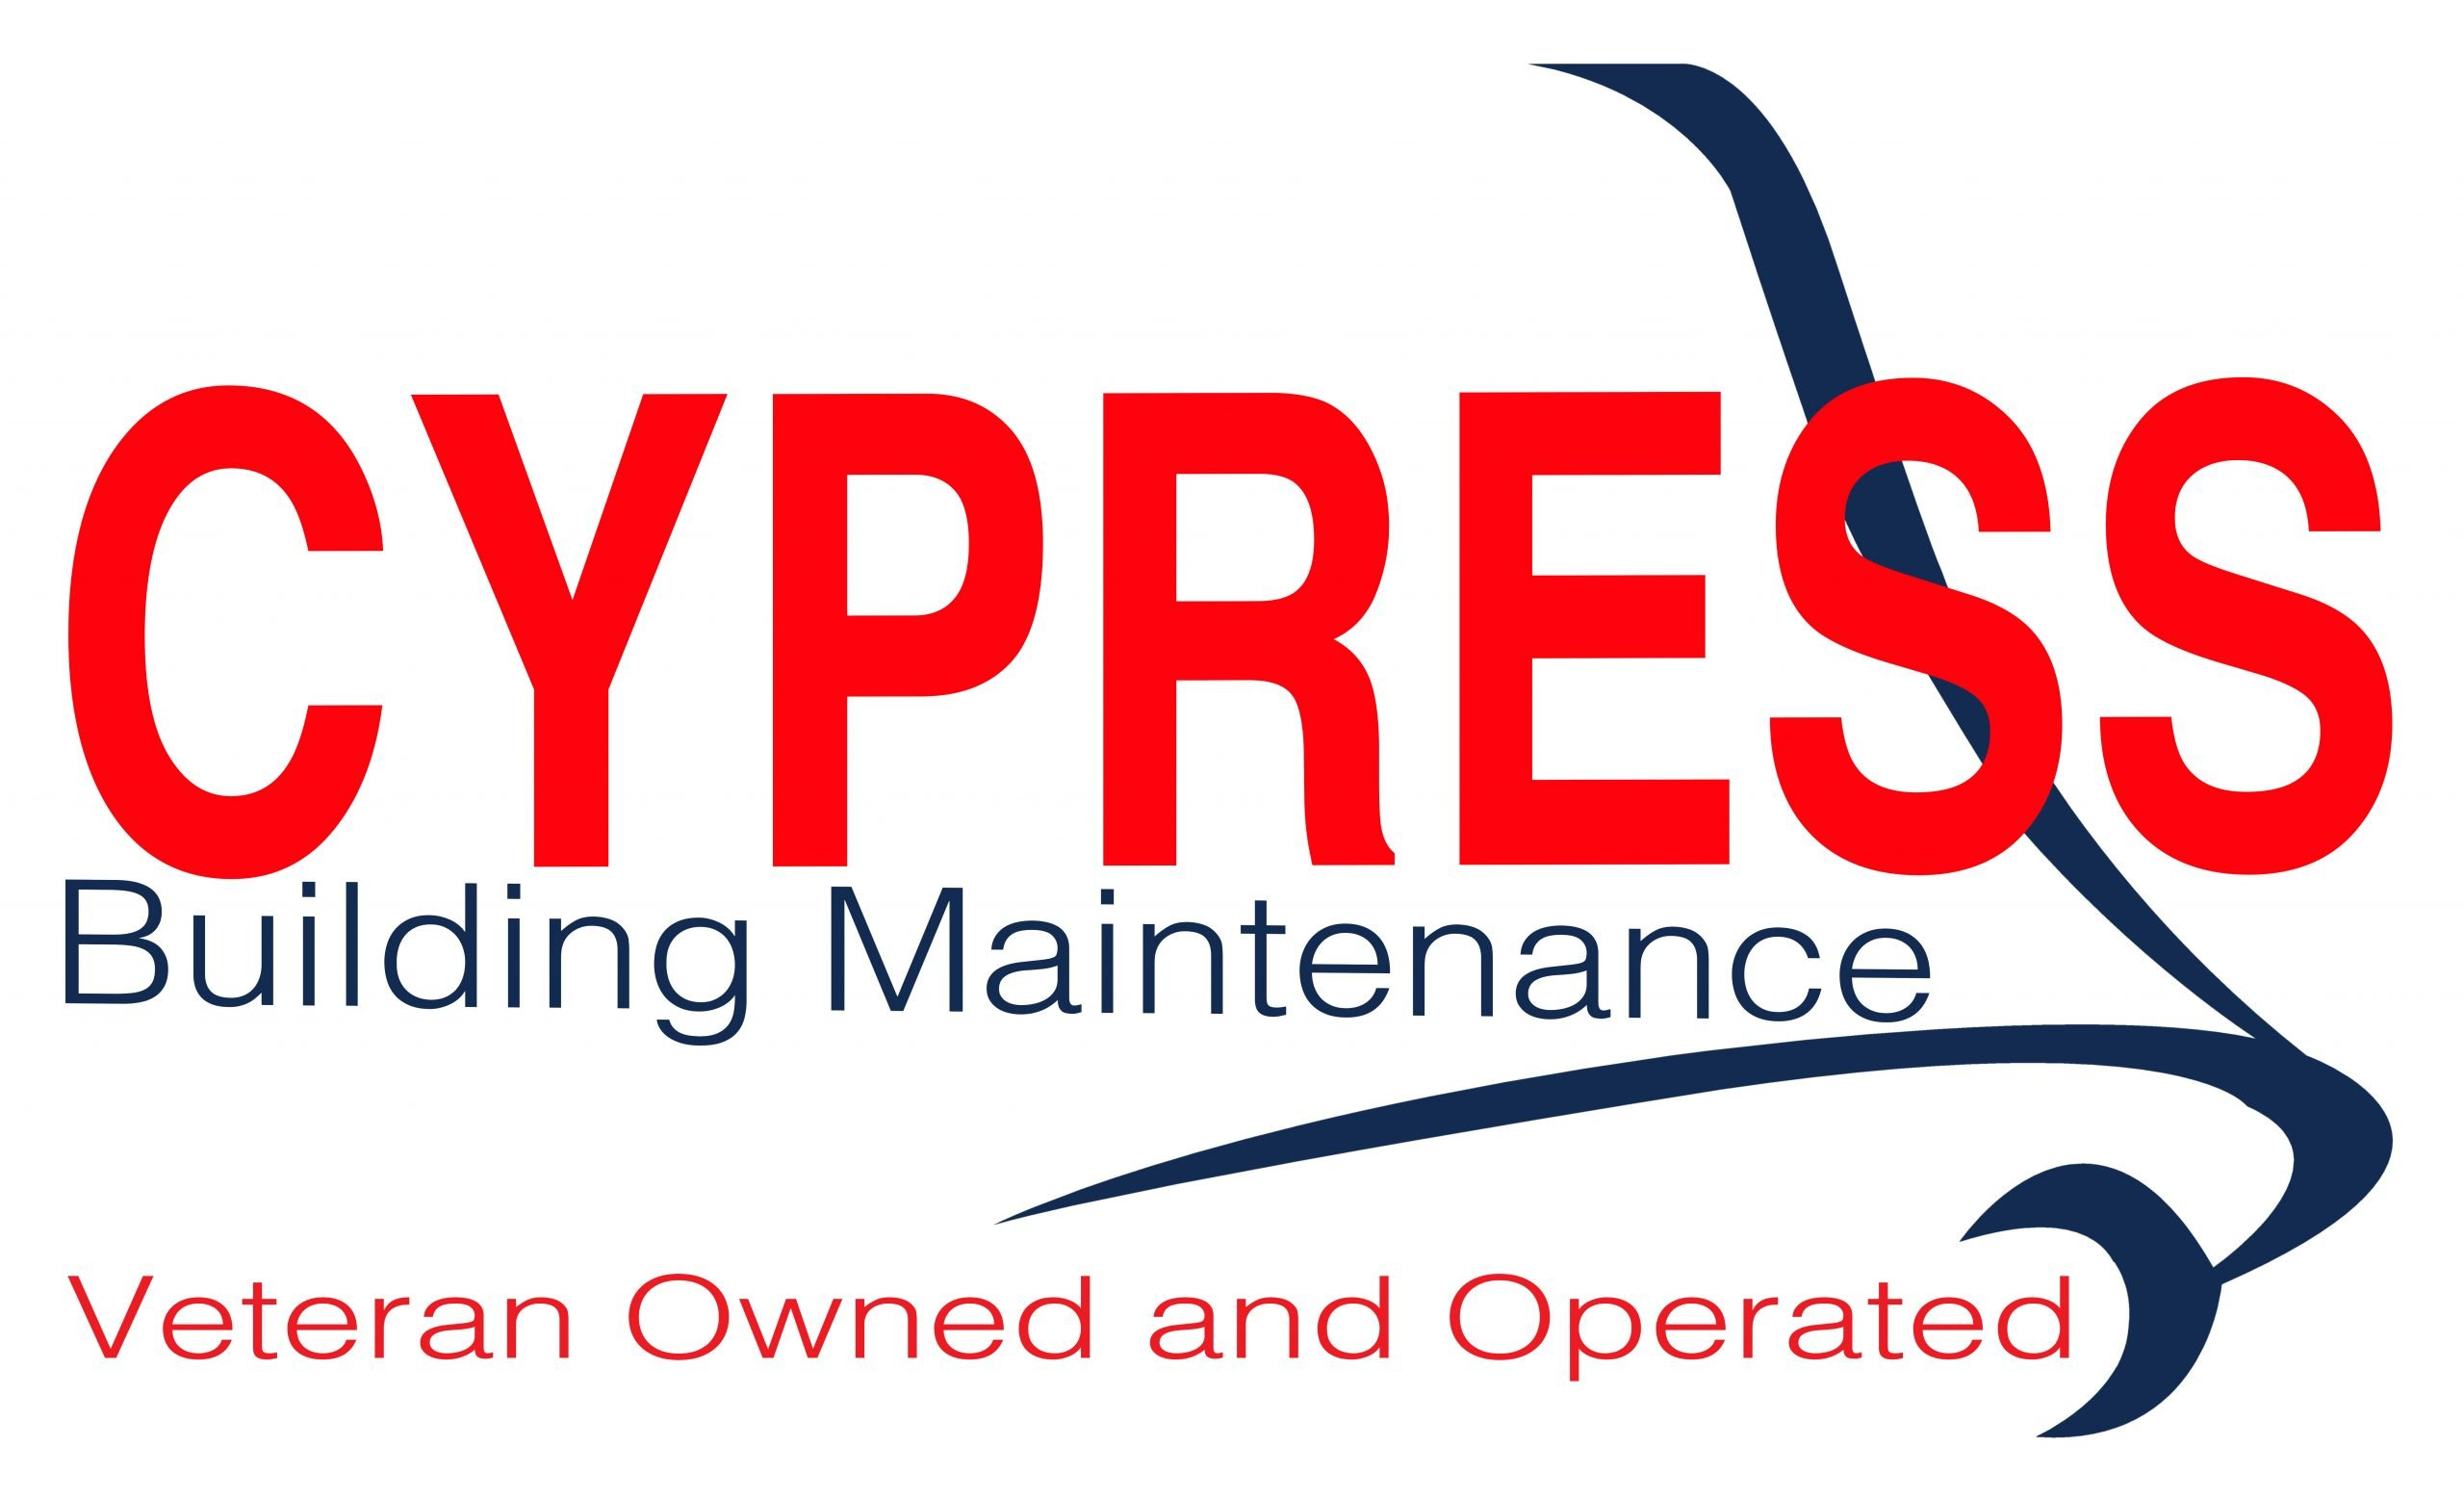 Cypress Building Maintenance